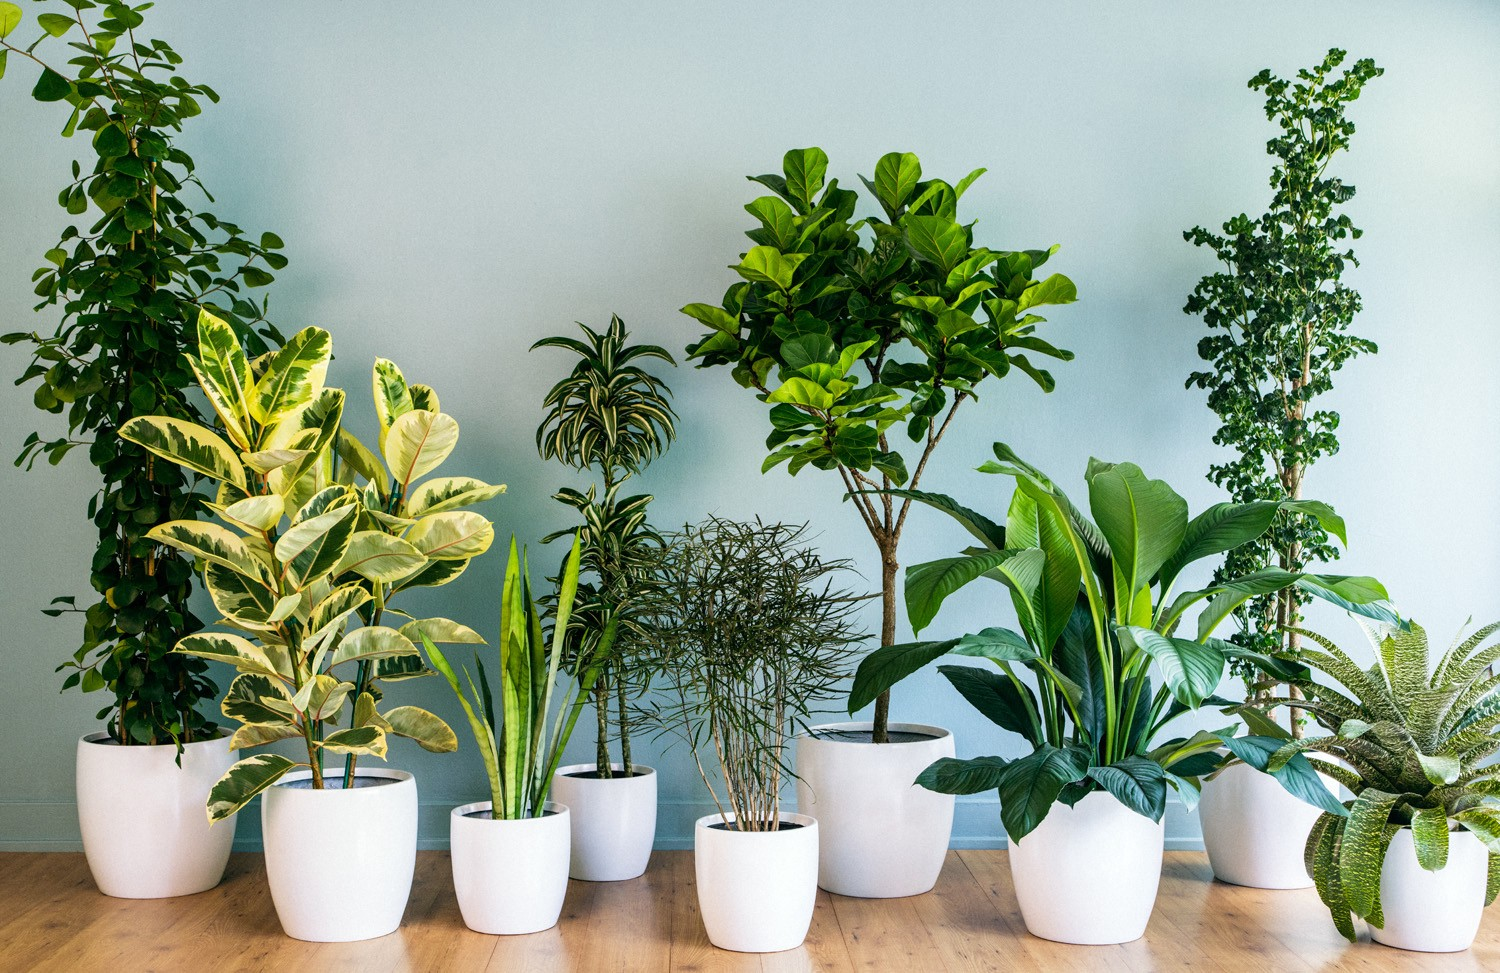 10 Amazing Air Purifying Plants for Indoors, and How to incorporate them into Your Interior Design